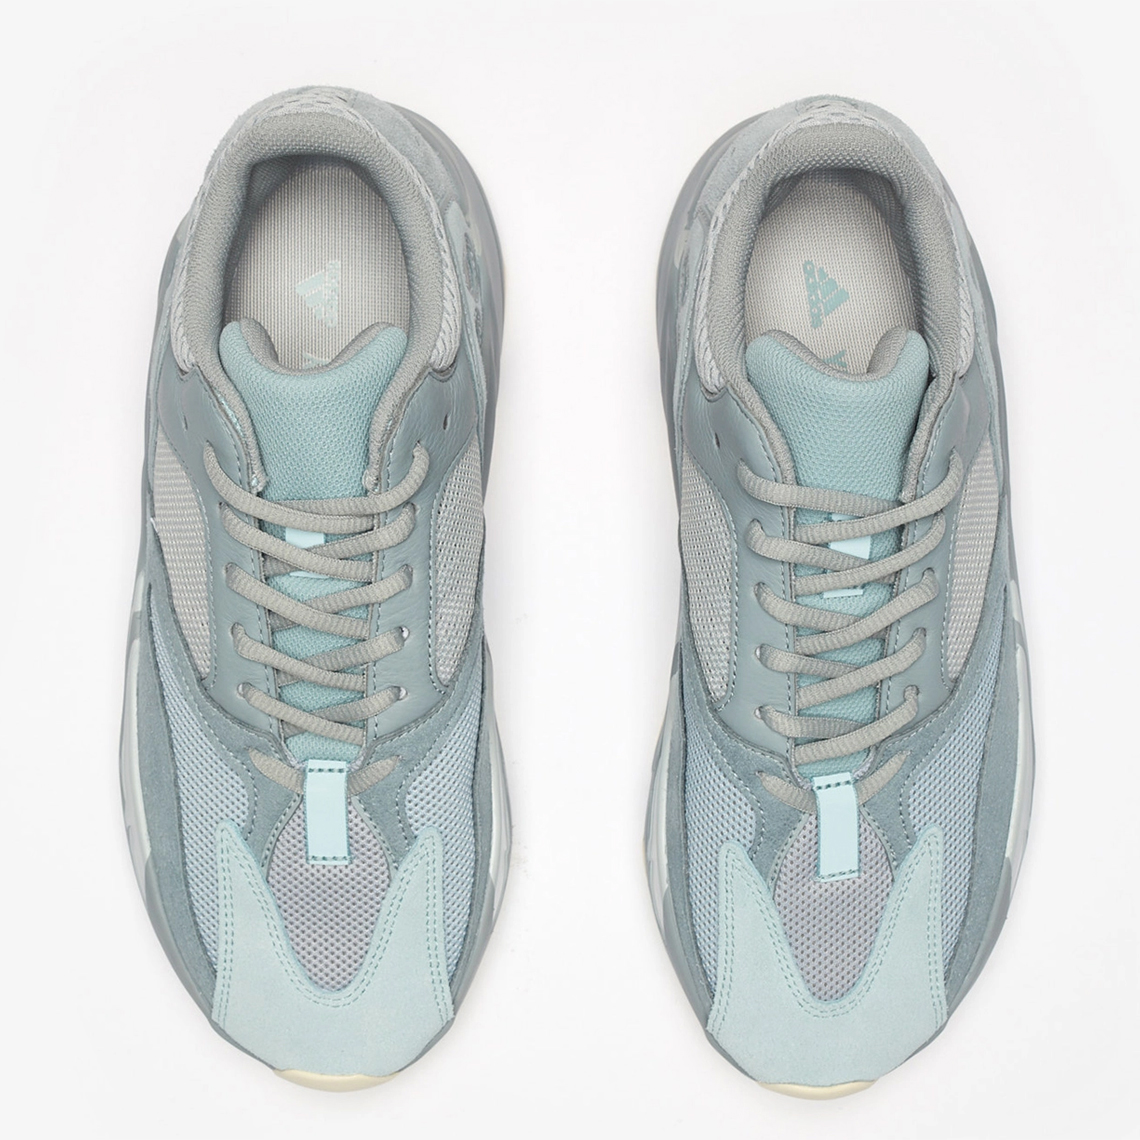 e337ae26bf223 adidas Yeezy 700 Inertia - Official Store List